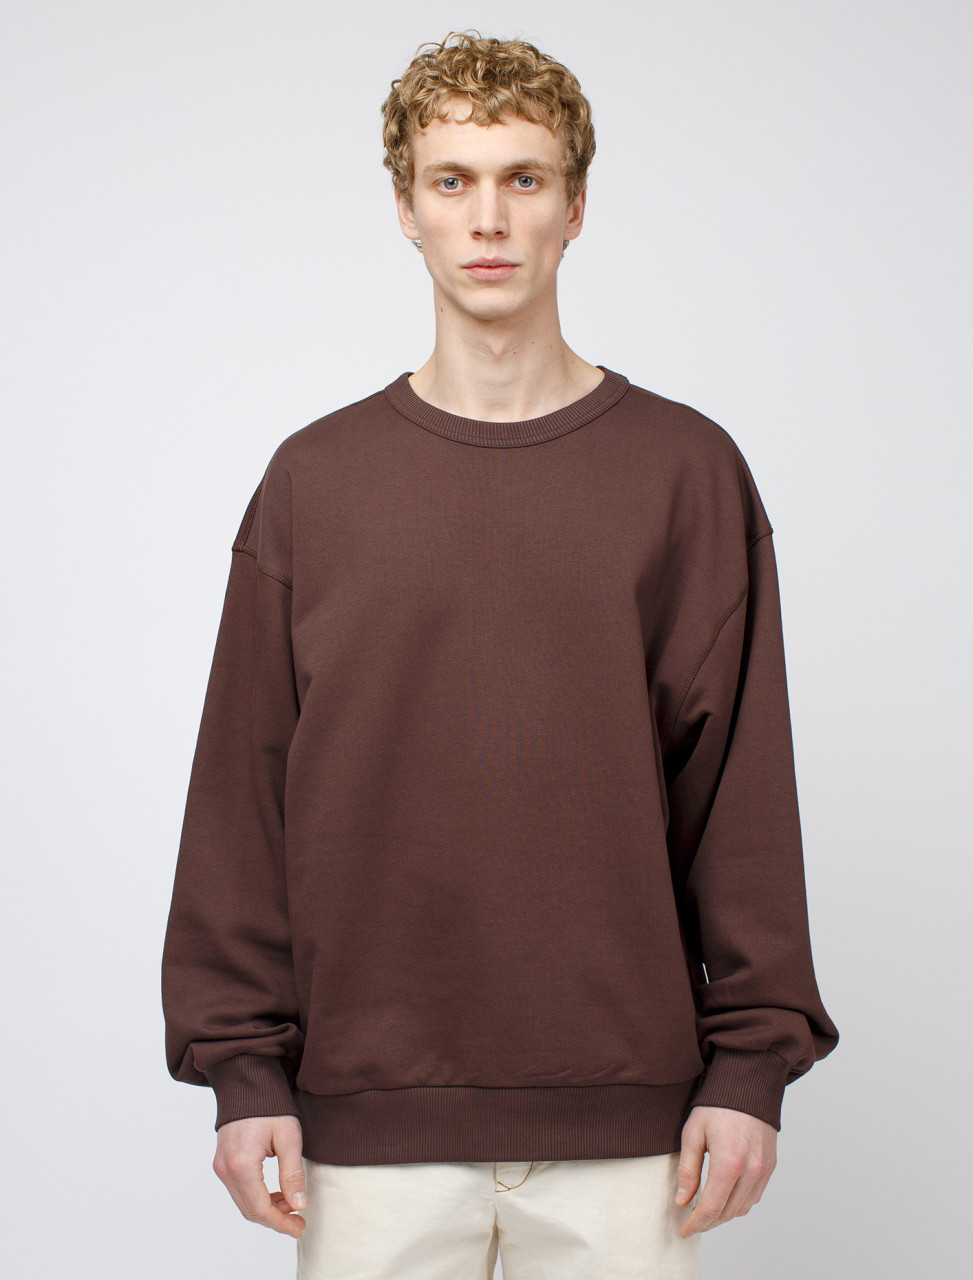 Haston Sweater